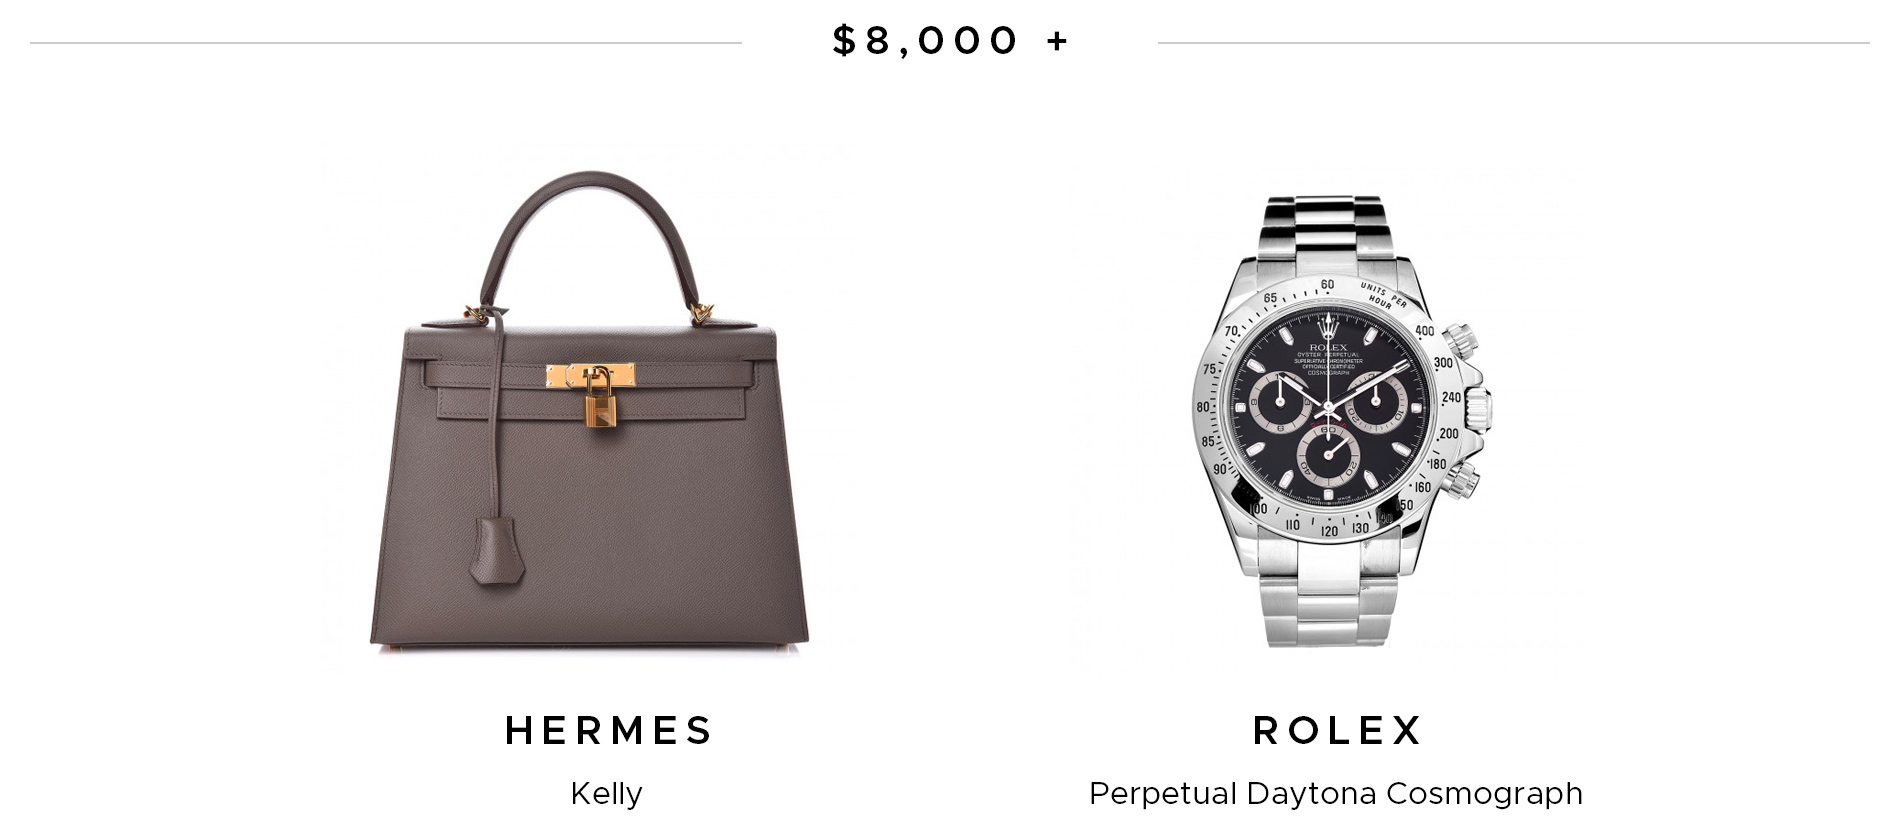 $8,000+ Hermes Kelly and Rolex Perpetual Daytona Cosmograph